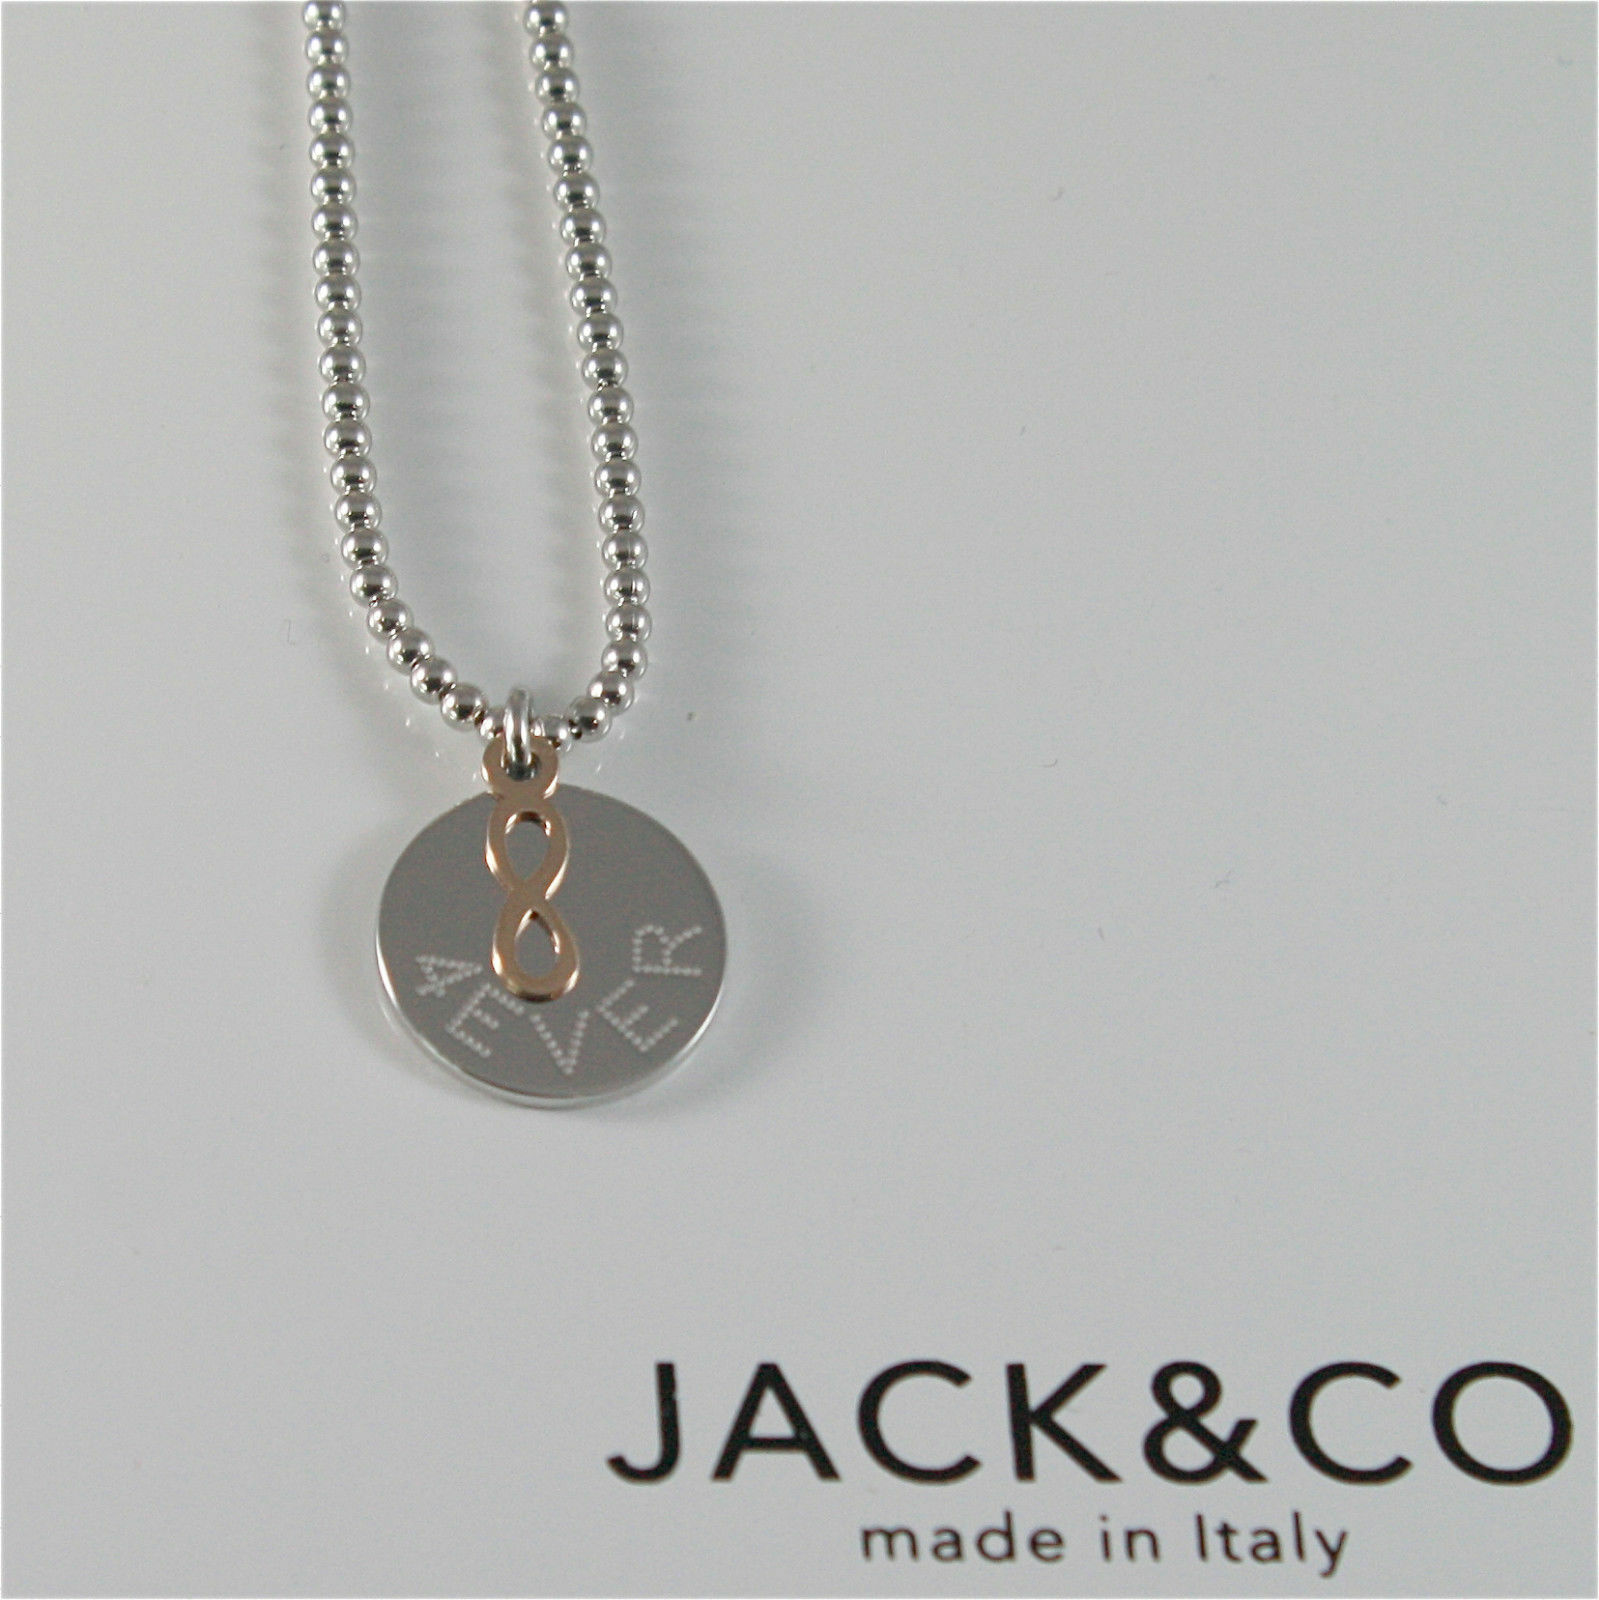 Necklace to Balls Silver 925 Jack&co with Infinity in Rose Gold 9KT JCN0548